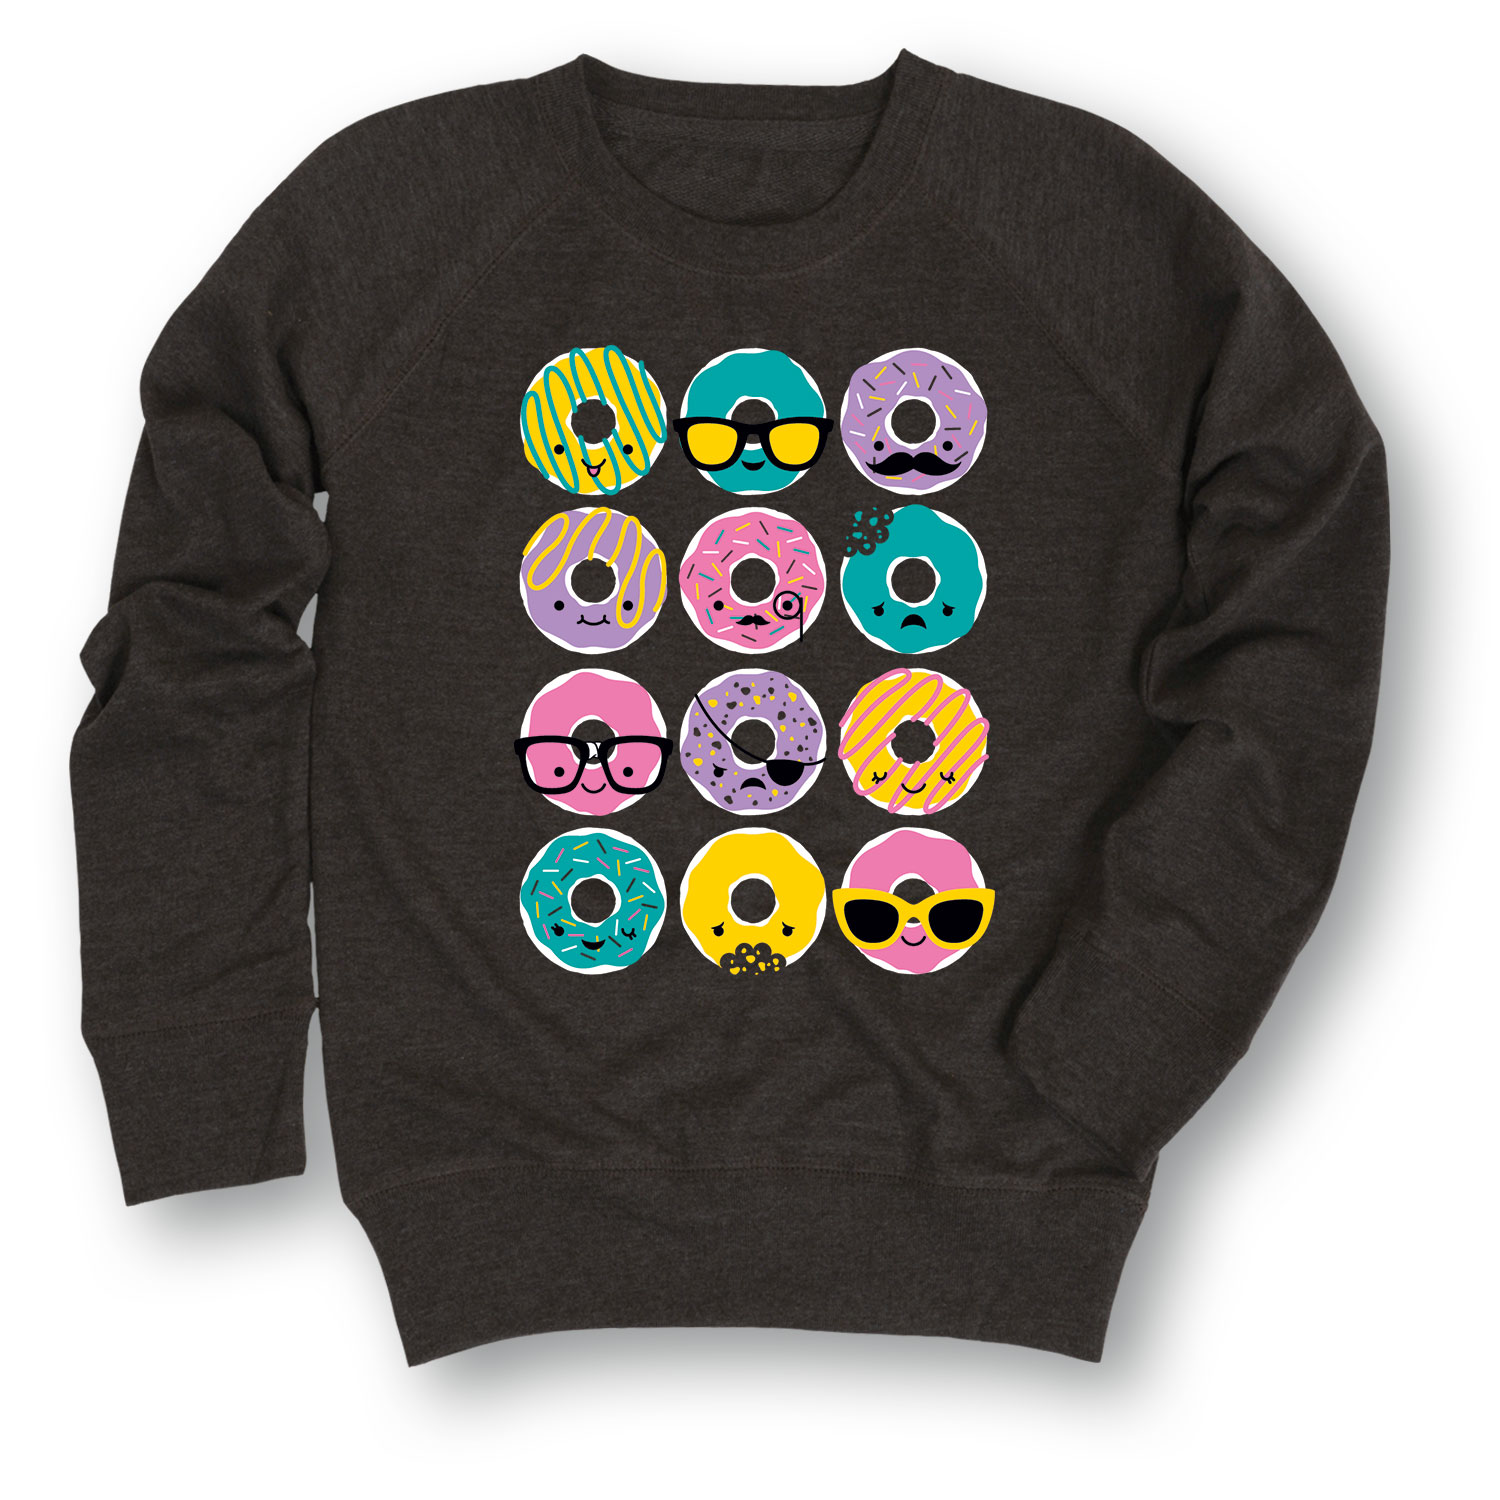 Kawaii Donuts - YOUTH GIRLS SLOUCHY FT